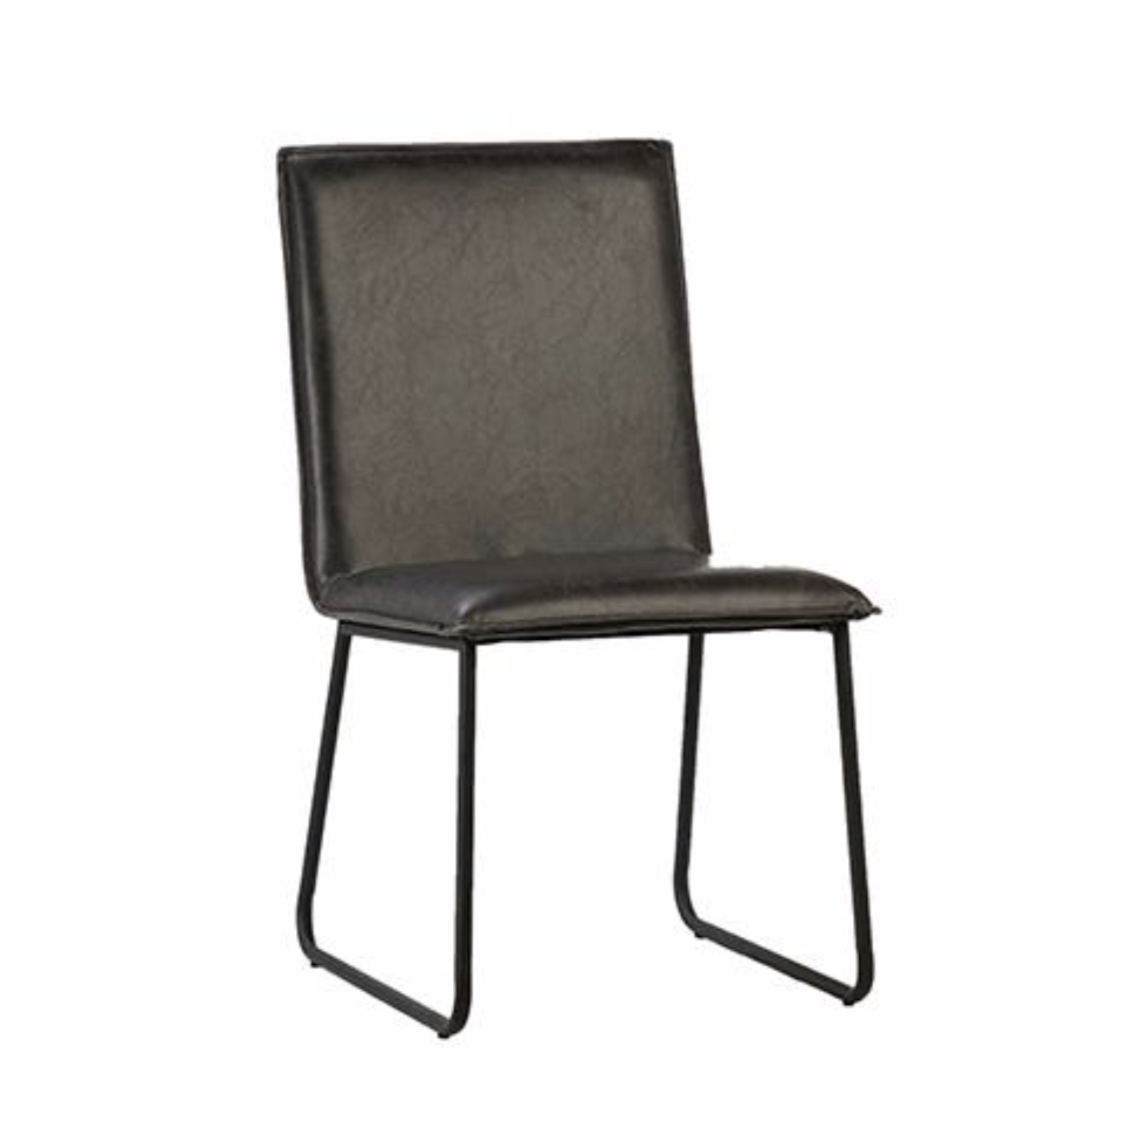 Gordola Leather Dining Chair